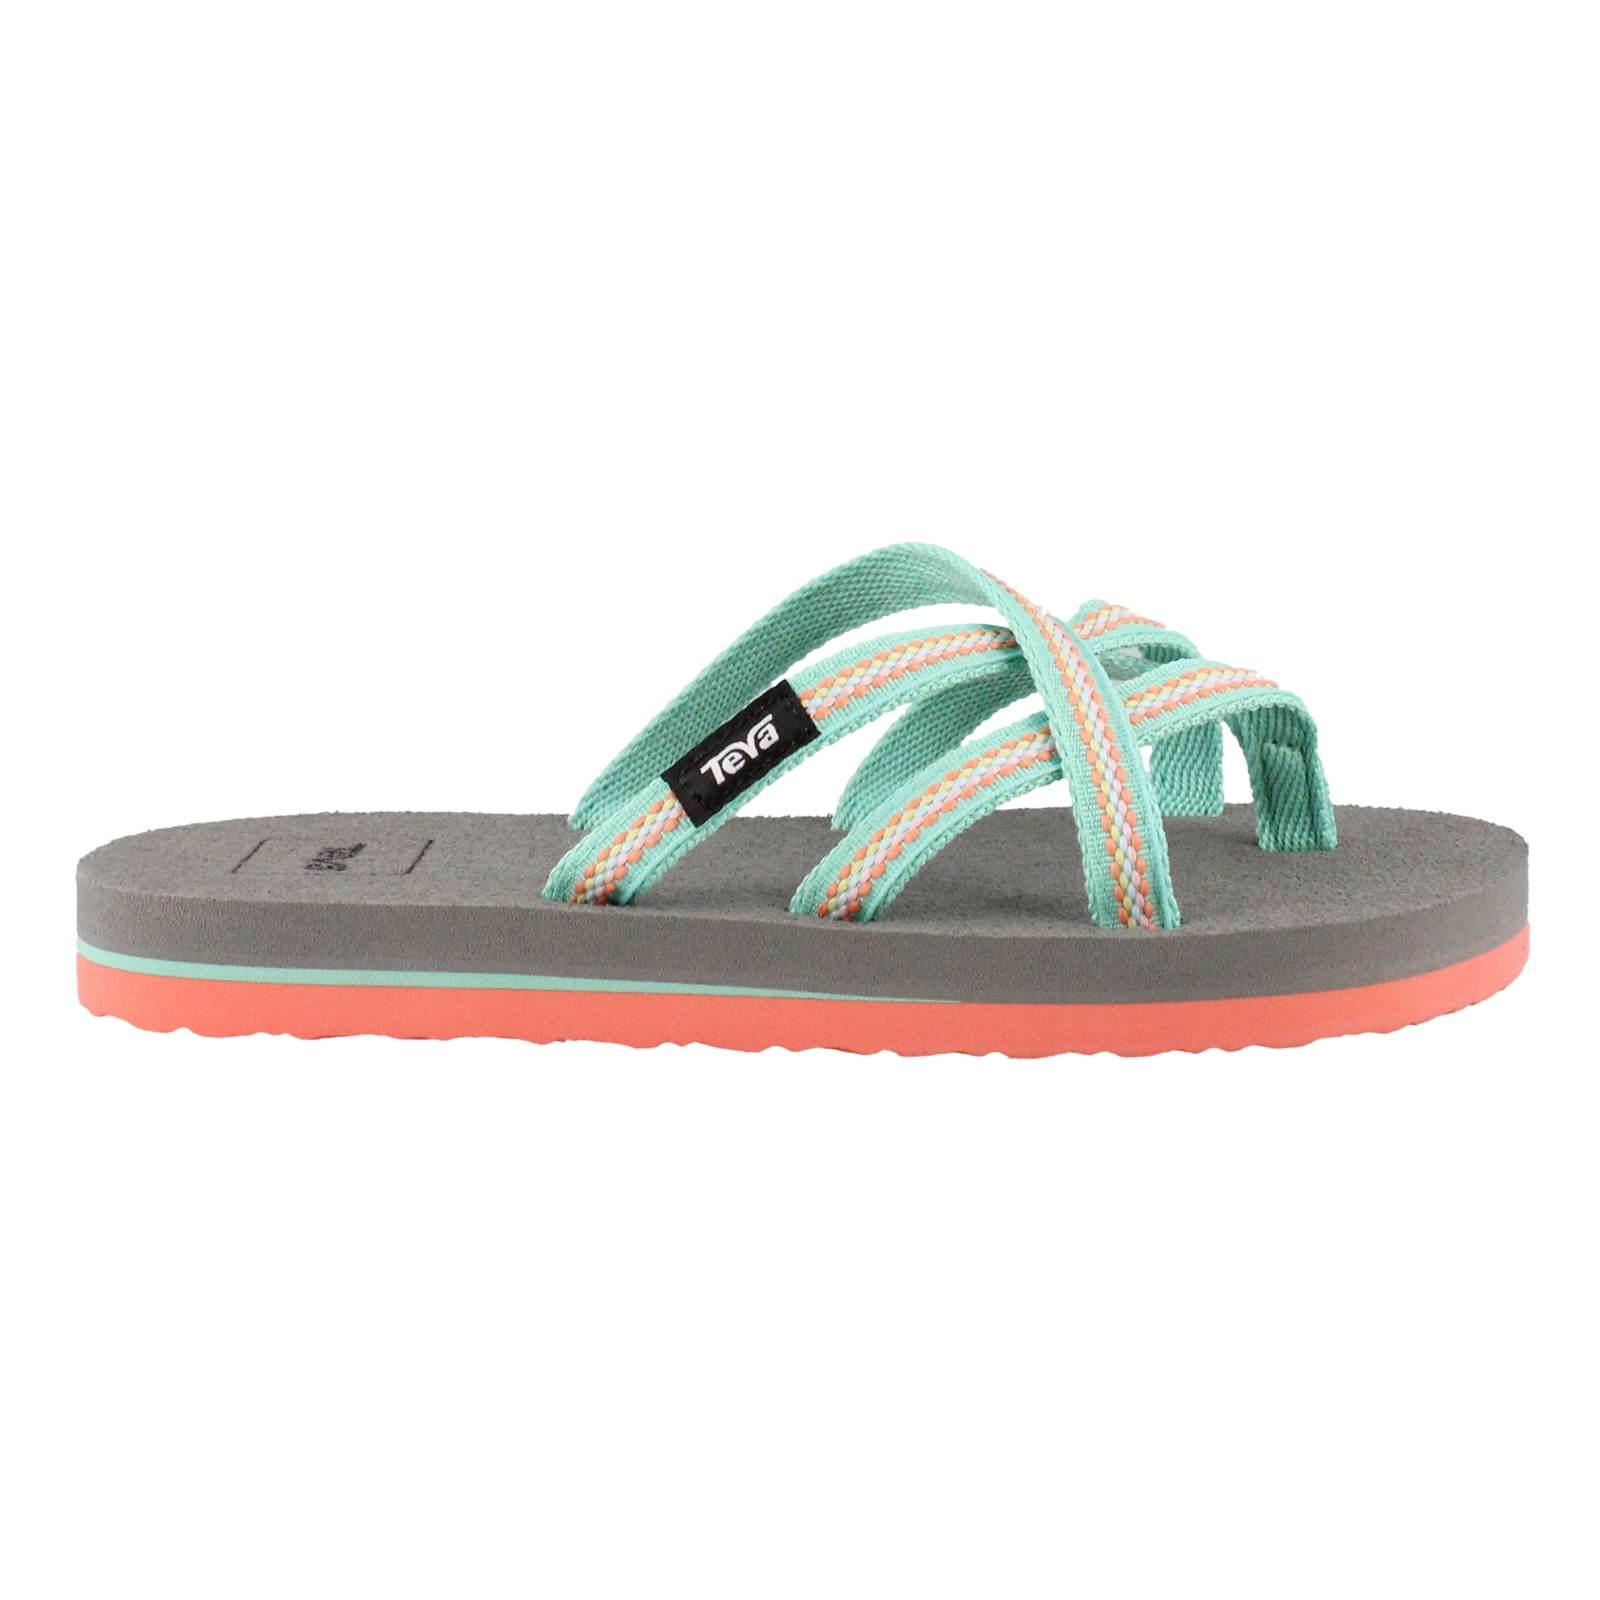 Girl's Teva, Olowahu Youth Sandal